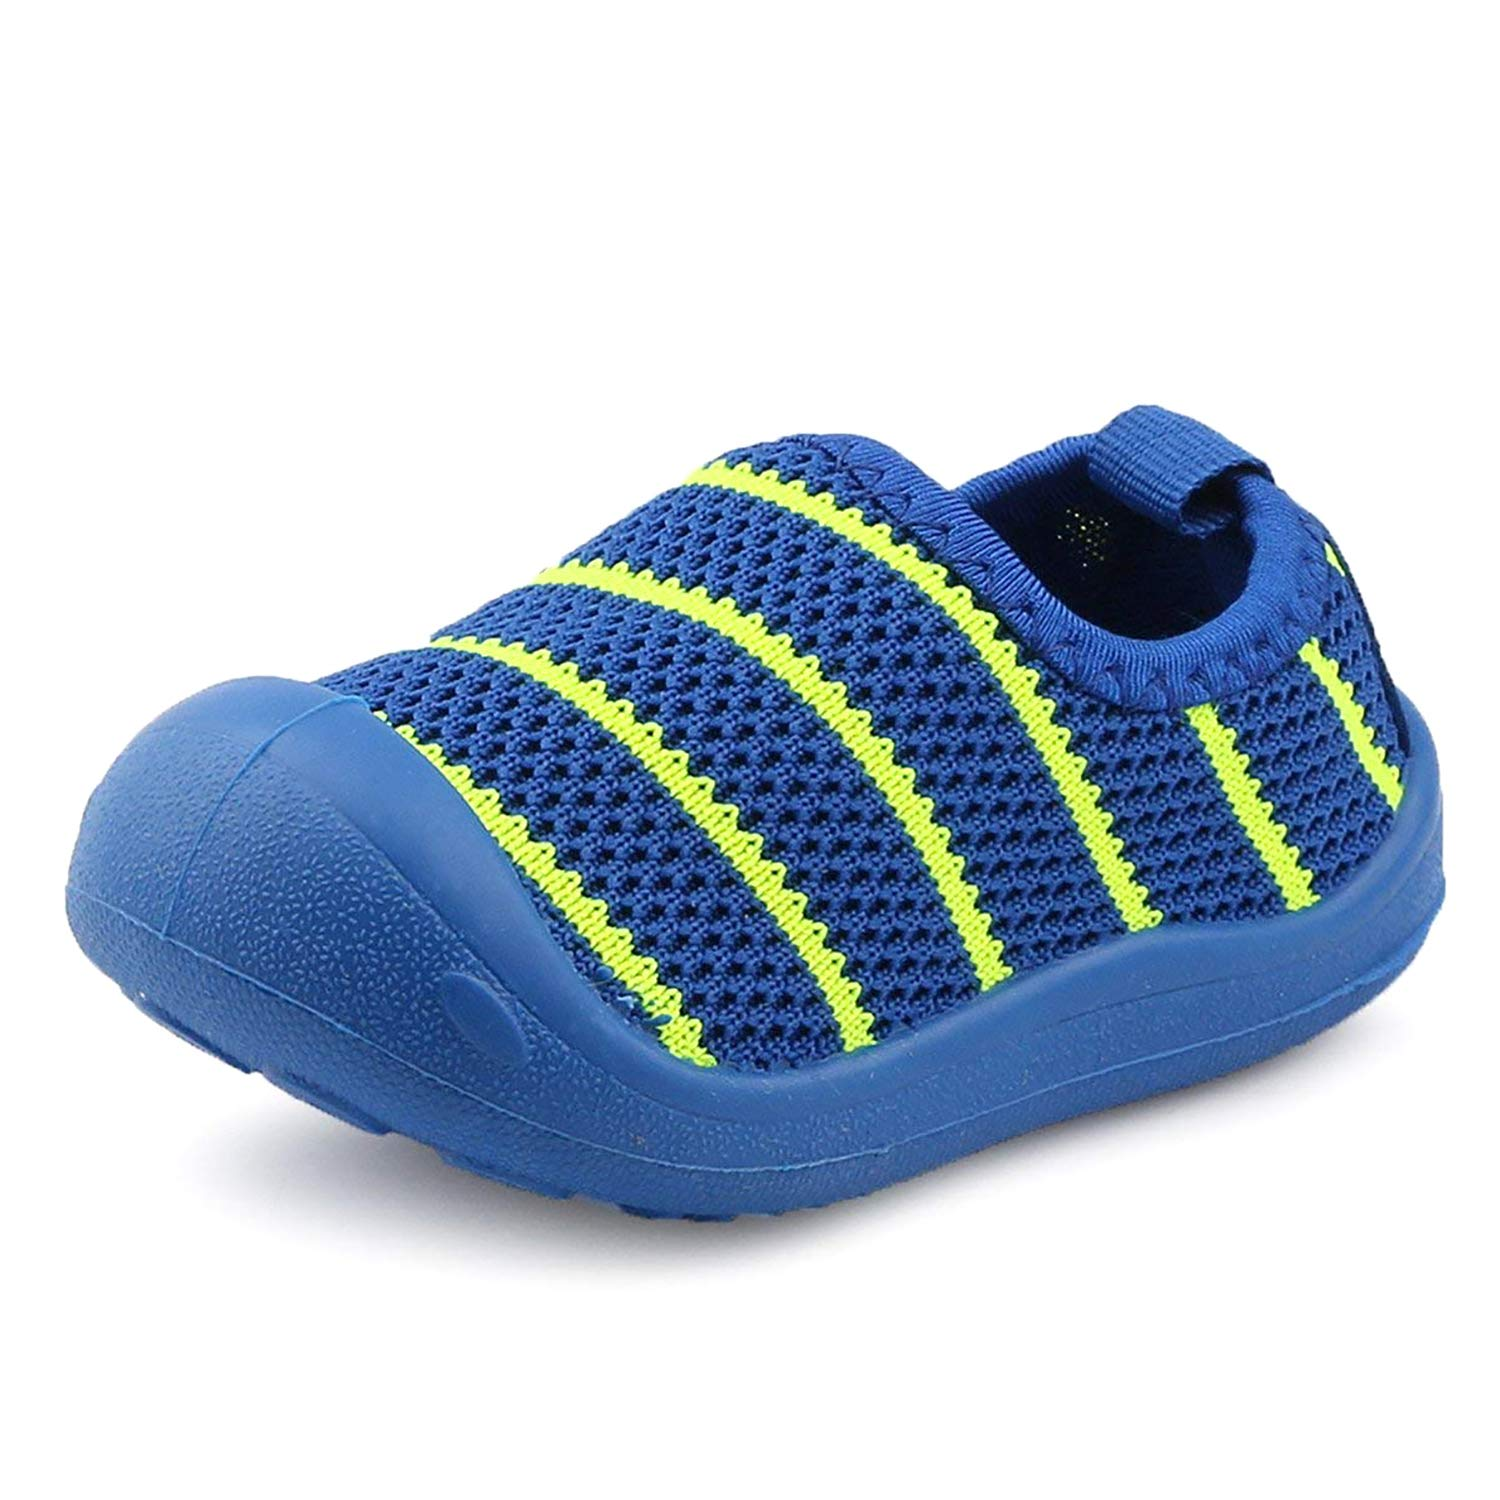 Cattle Shop Kids Slip On Loafers Casual Mesh Sneakers Aqua Water Running Beach Breathable Shoes for Toddler